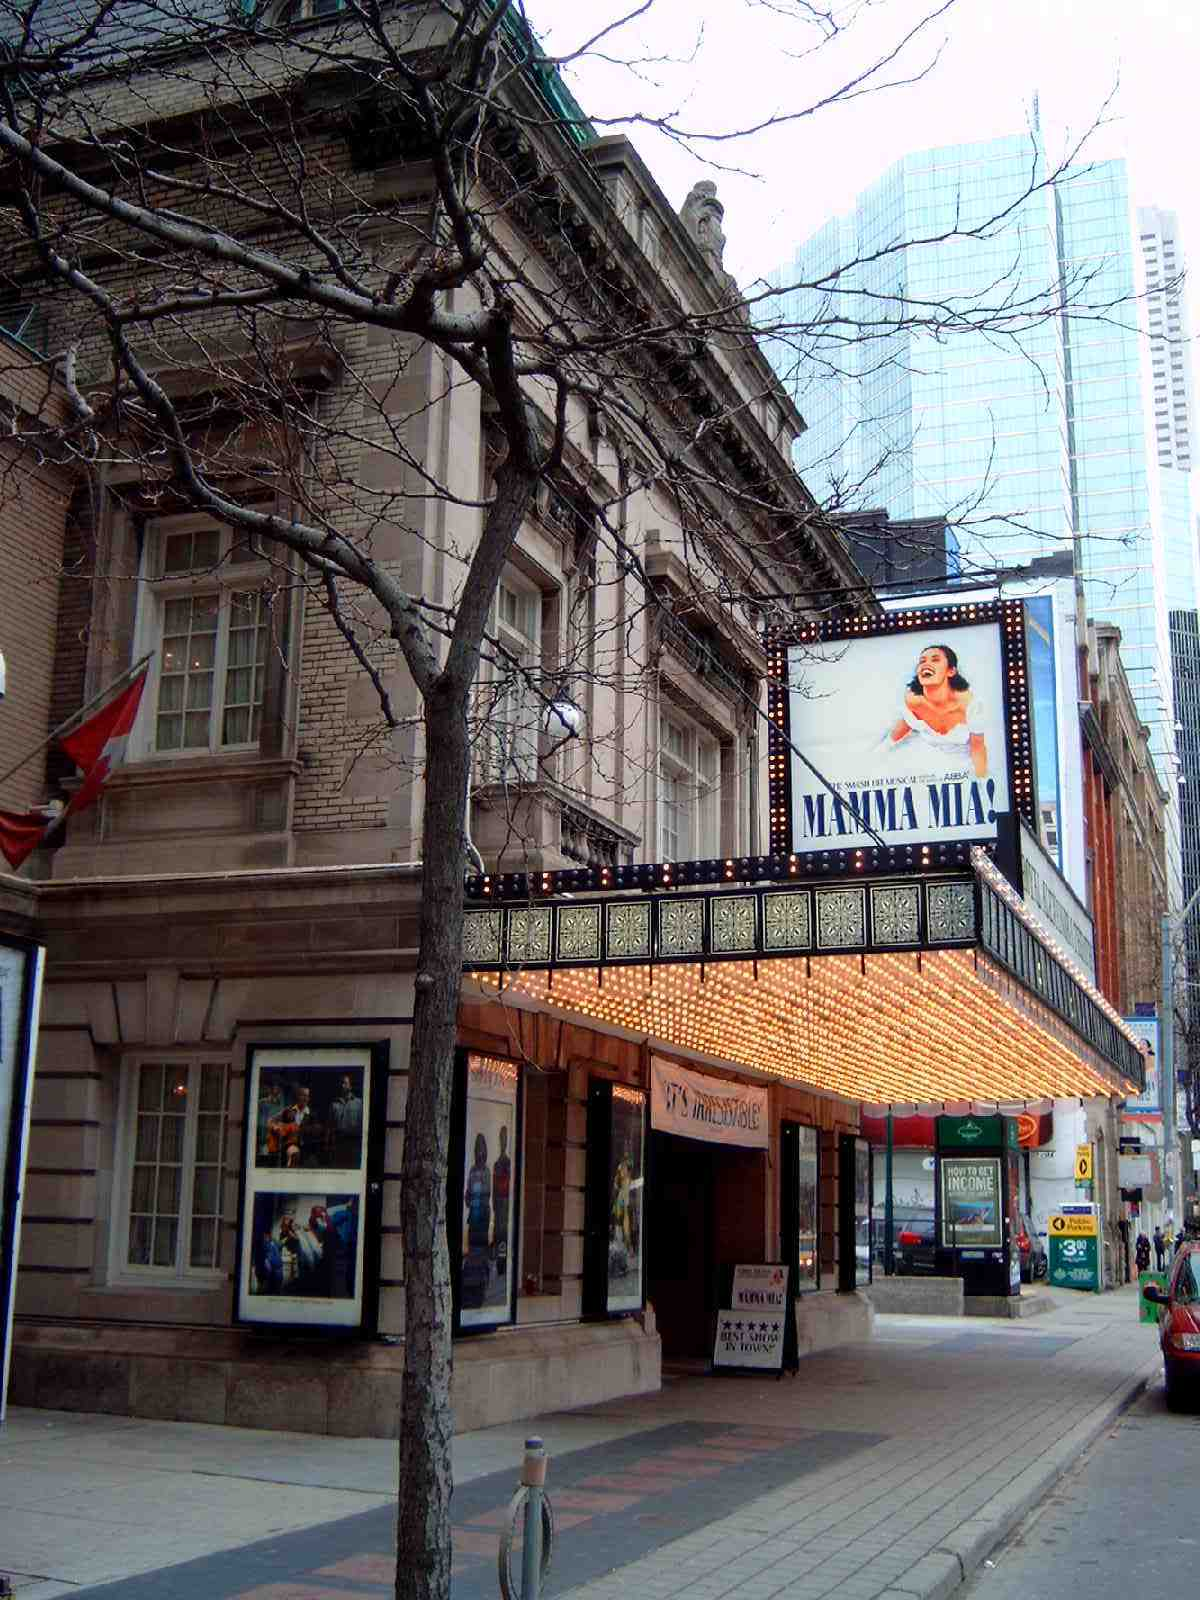 File:Royal Alex Theatre, Toronto.jpg - Wikipedia, the free ...